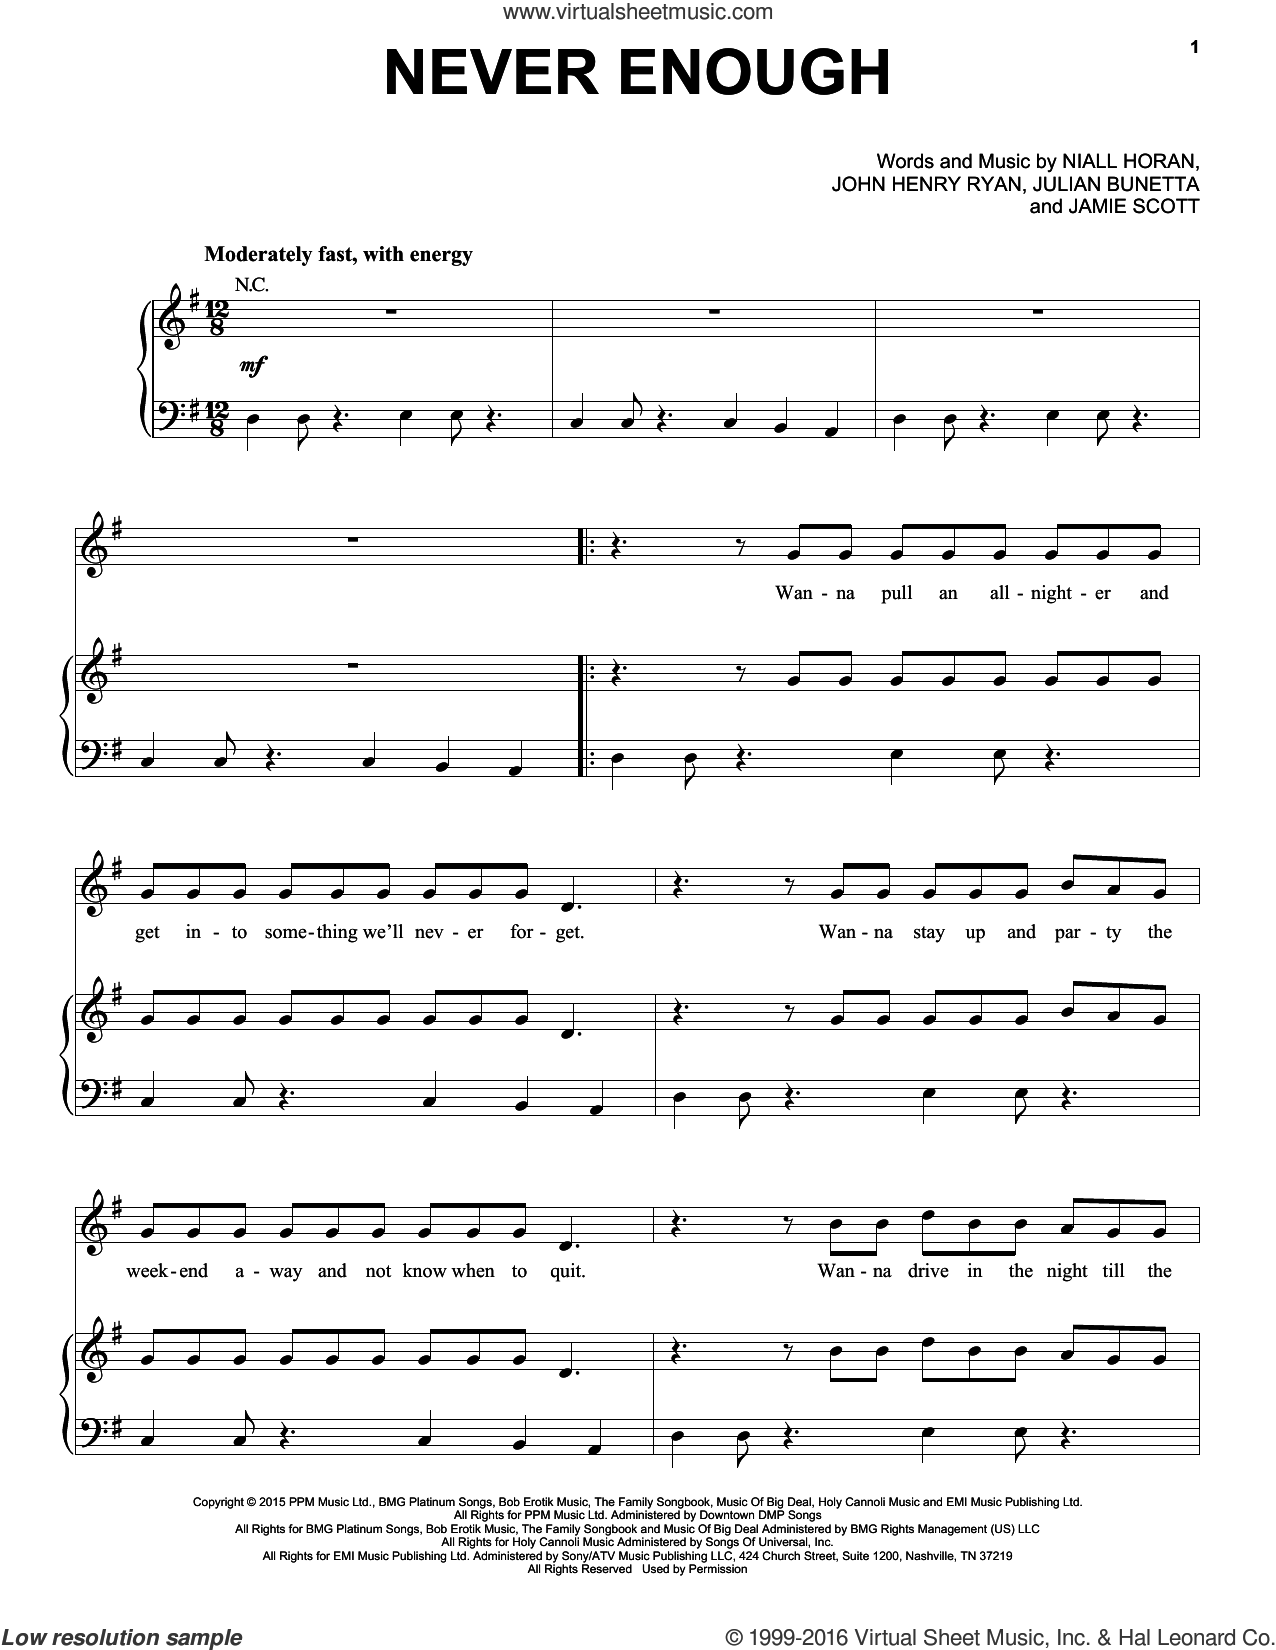 Never Enough sheet music for voice, piano or guitar by One Direction, Jamie Scott, John Henry Ryan, Julian Bunetta and Niall Horan, intermediate skill level